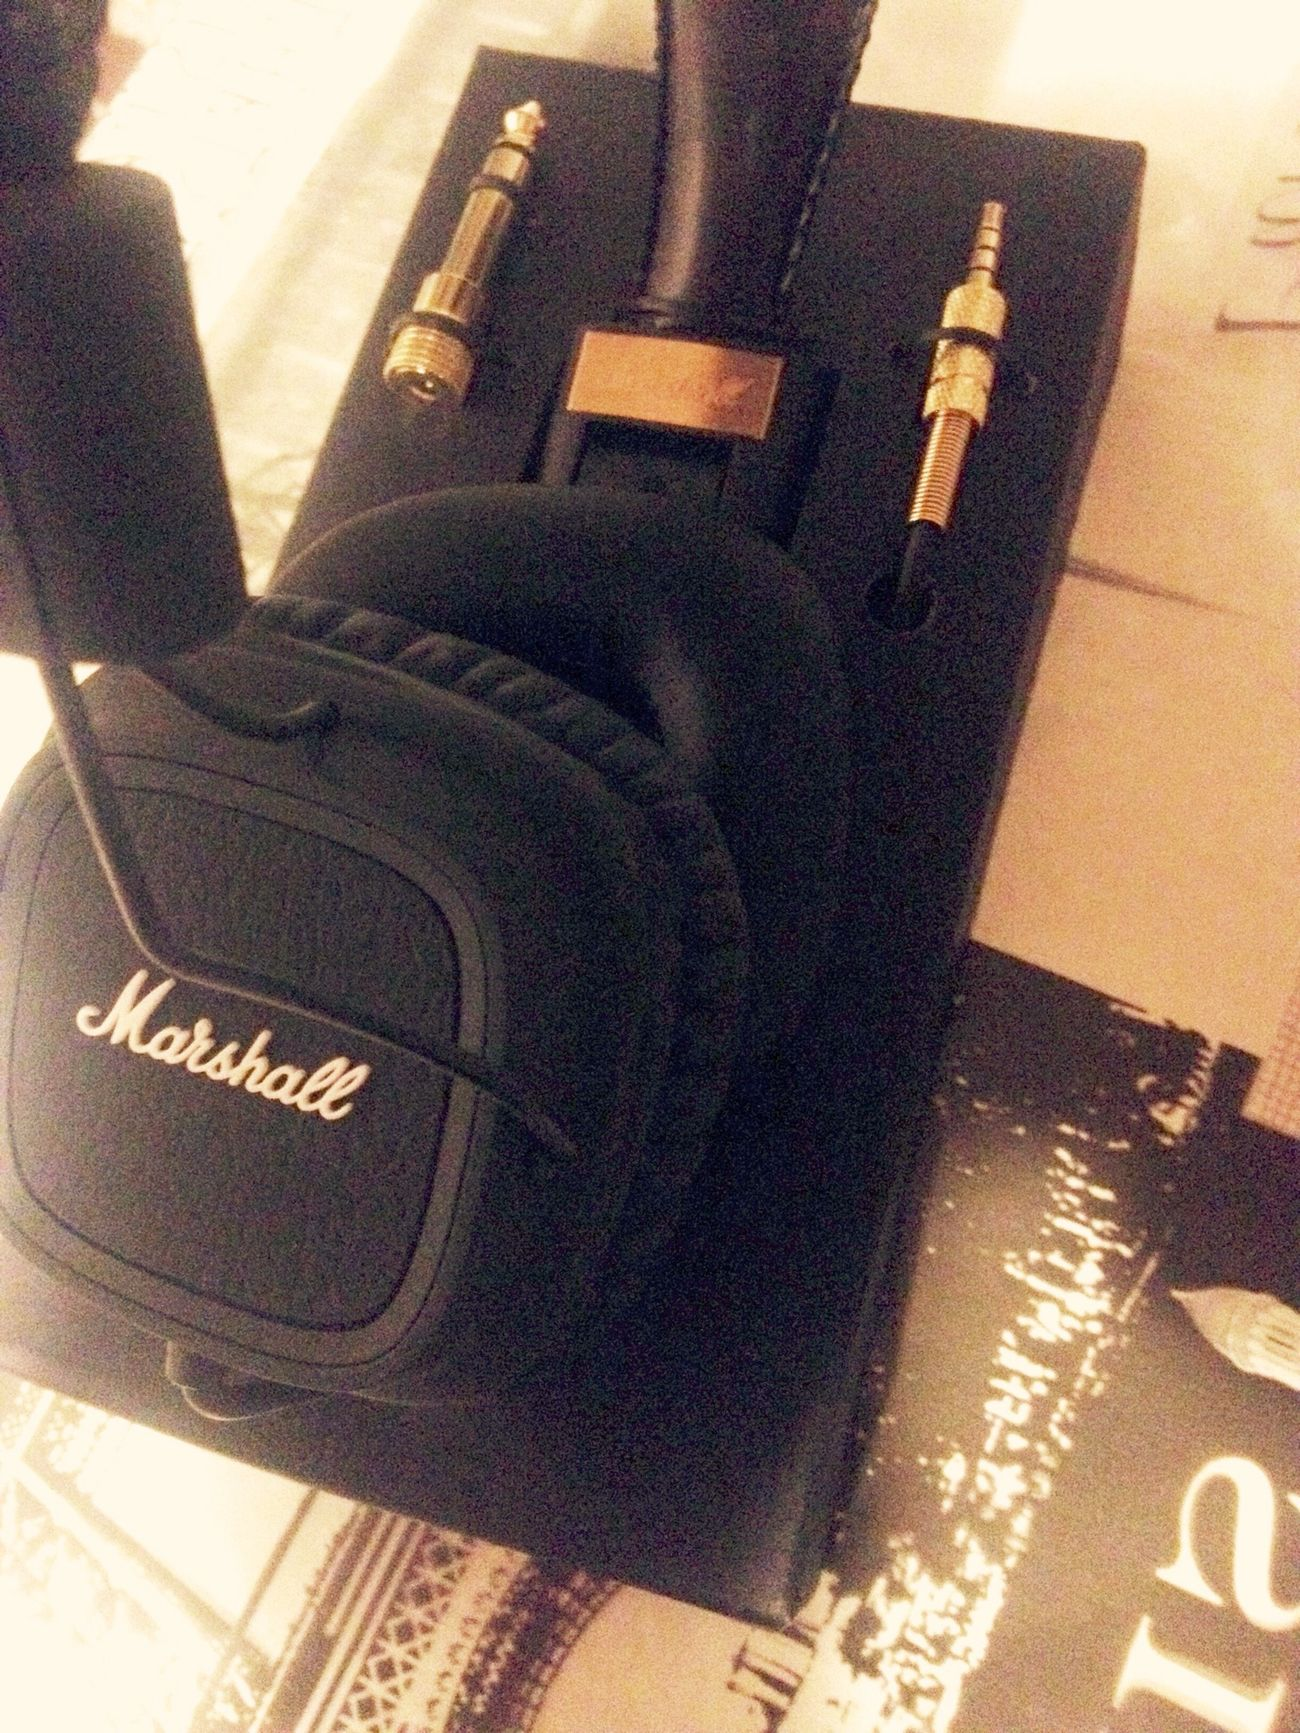 Listening To Music Sales Marshall My new Major, Marshall ??? Enjoying Life